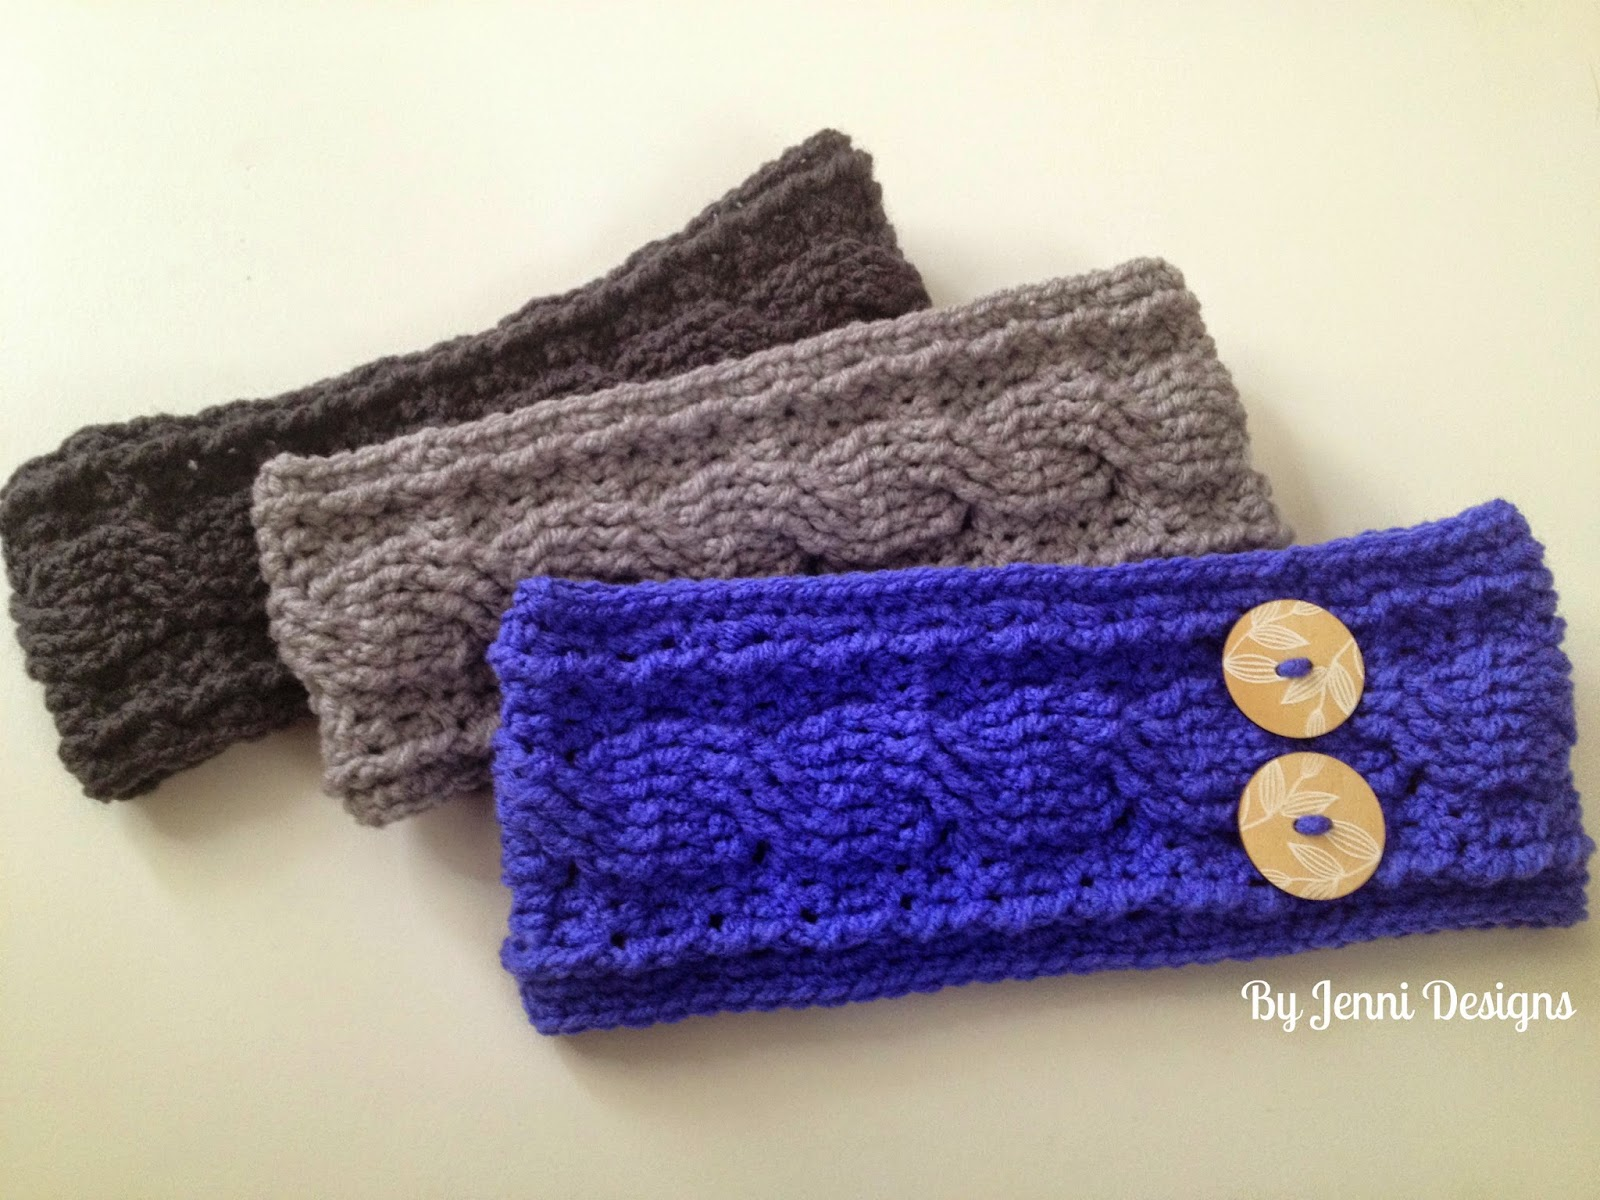 Cable Knit Ear Warmer Pattern : By Jenni Designs: Crochet Cable Ear Warmer Pattern